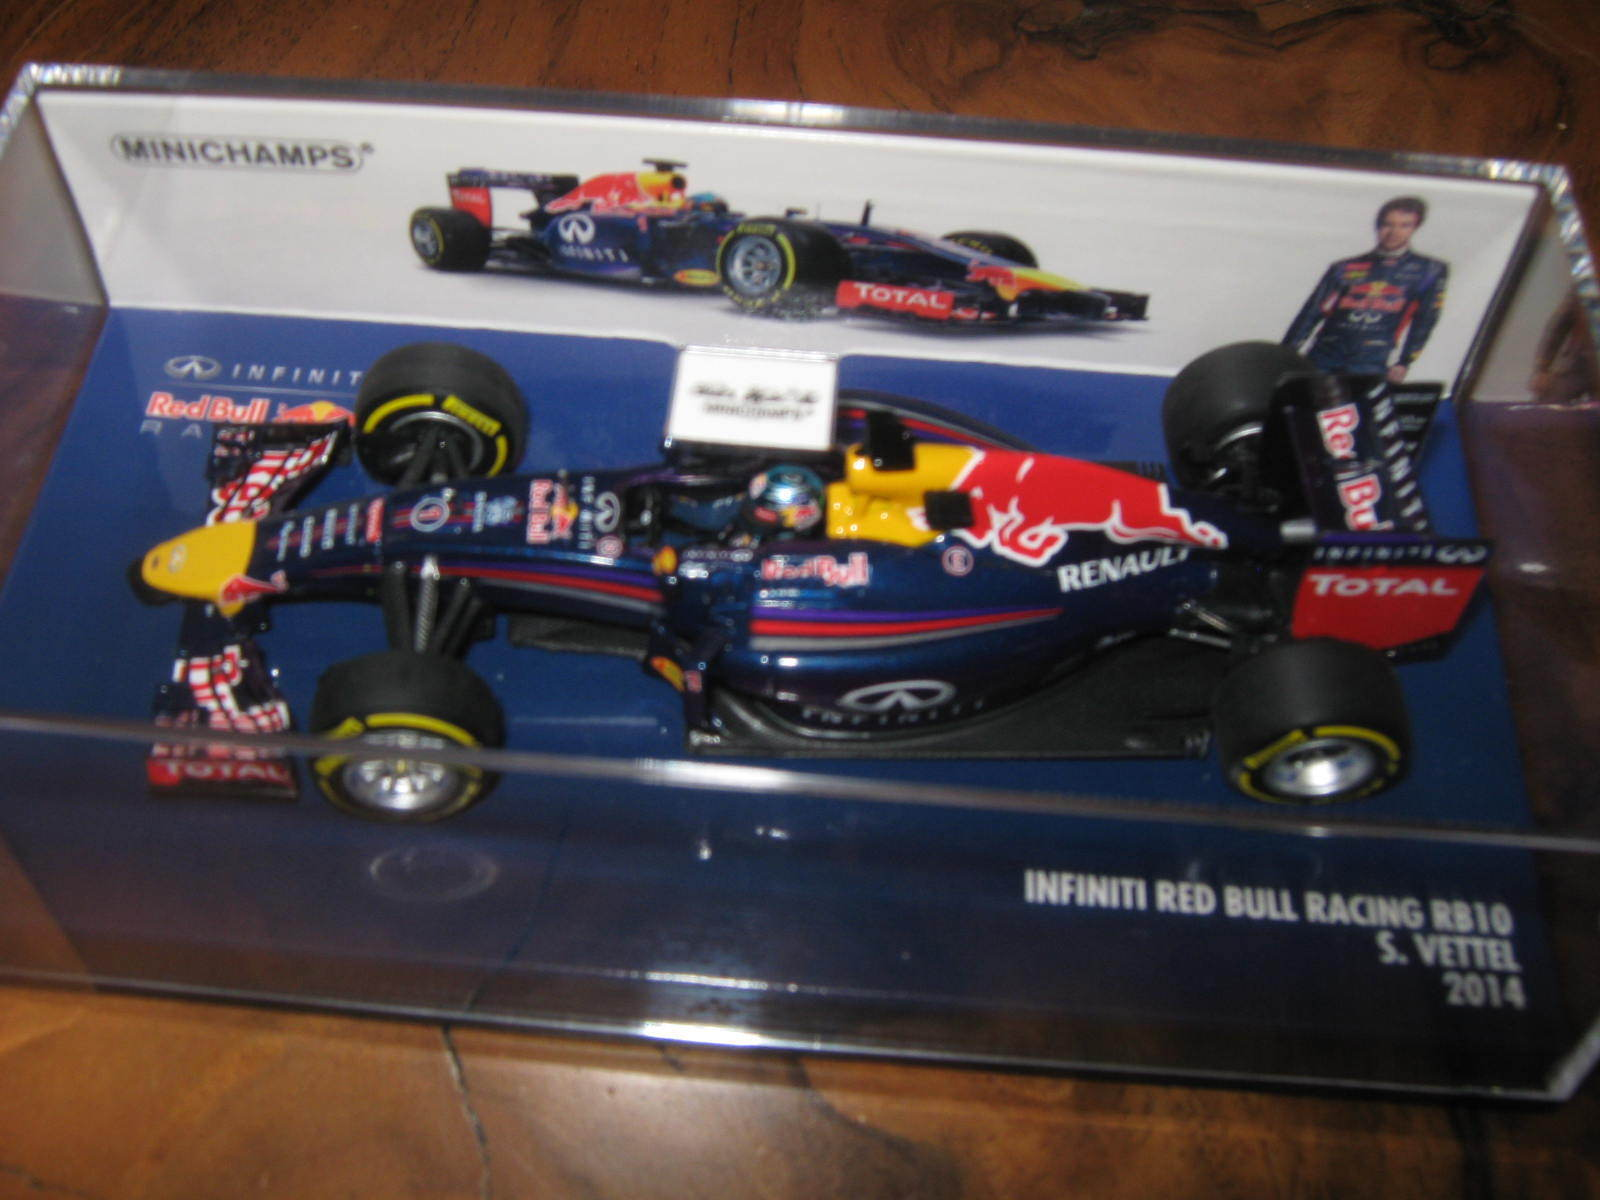 1 43 rosso Bull Renault rb10 rb10 rb10 2014 pag. ciabatta 410140001 Minichamps OVP NEW 27e54c